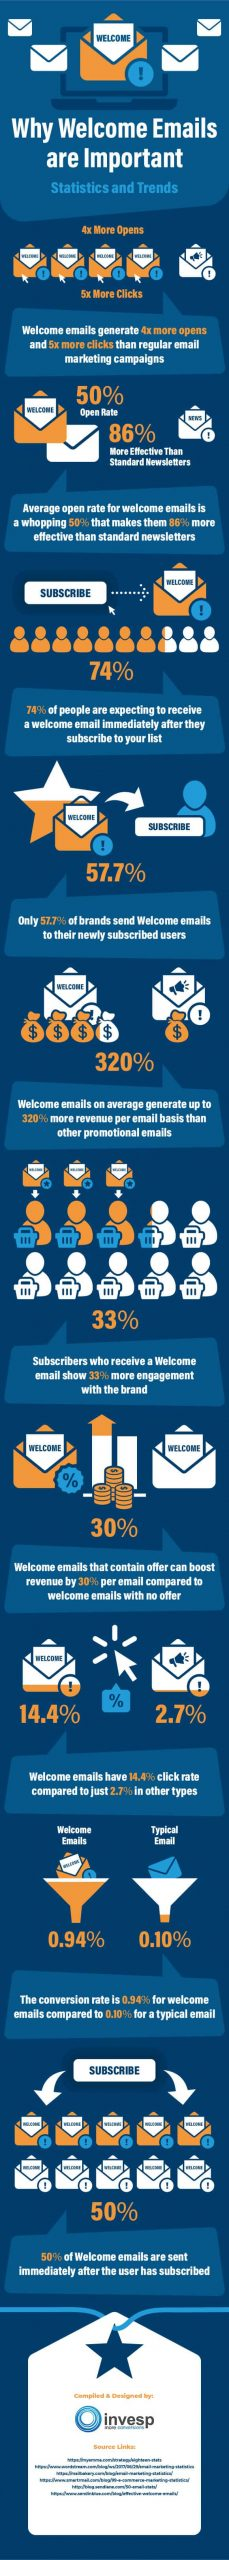 Welcome emails statistics infographic